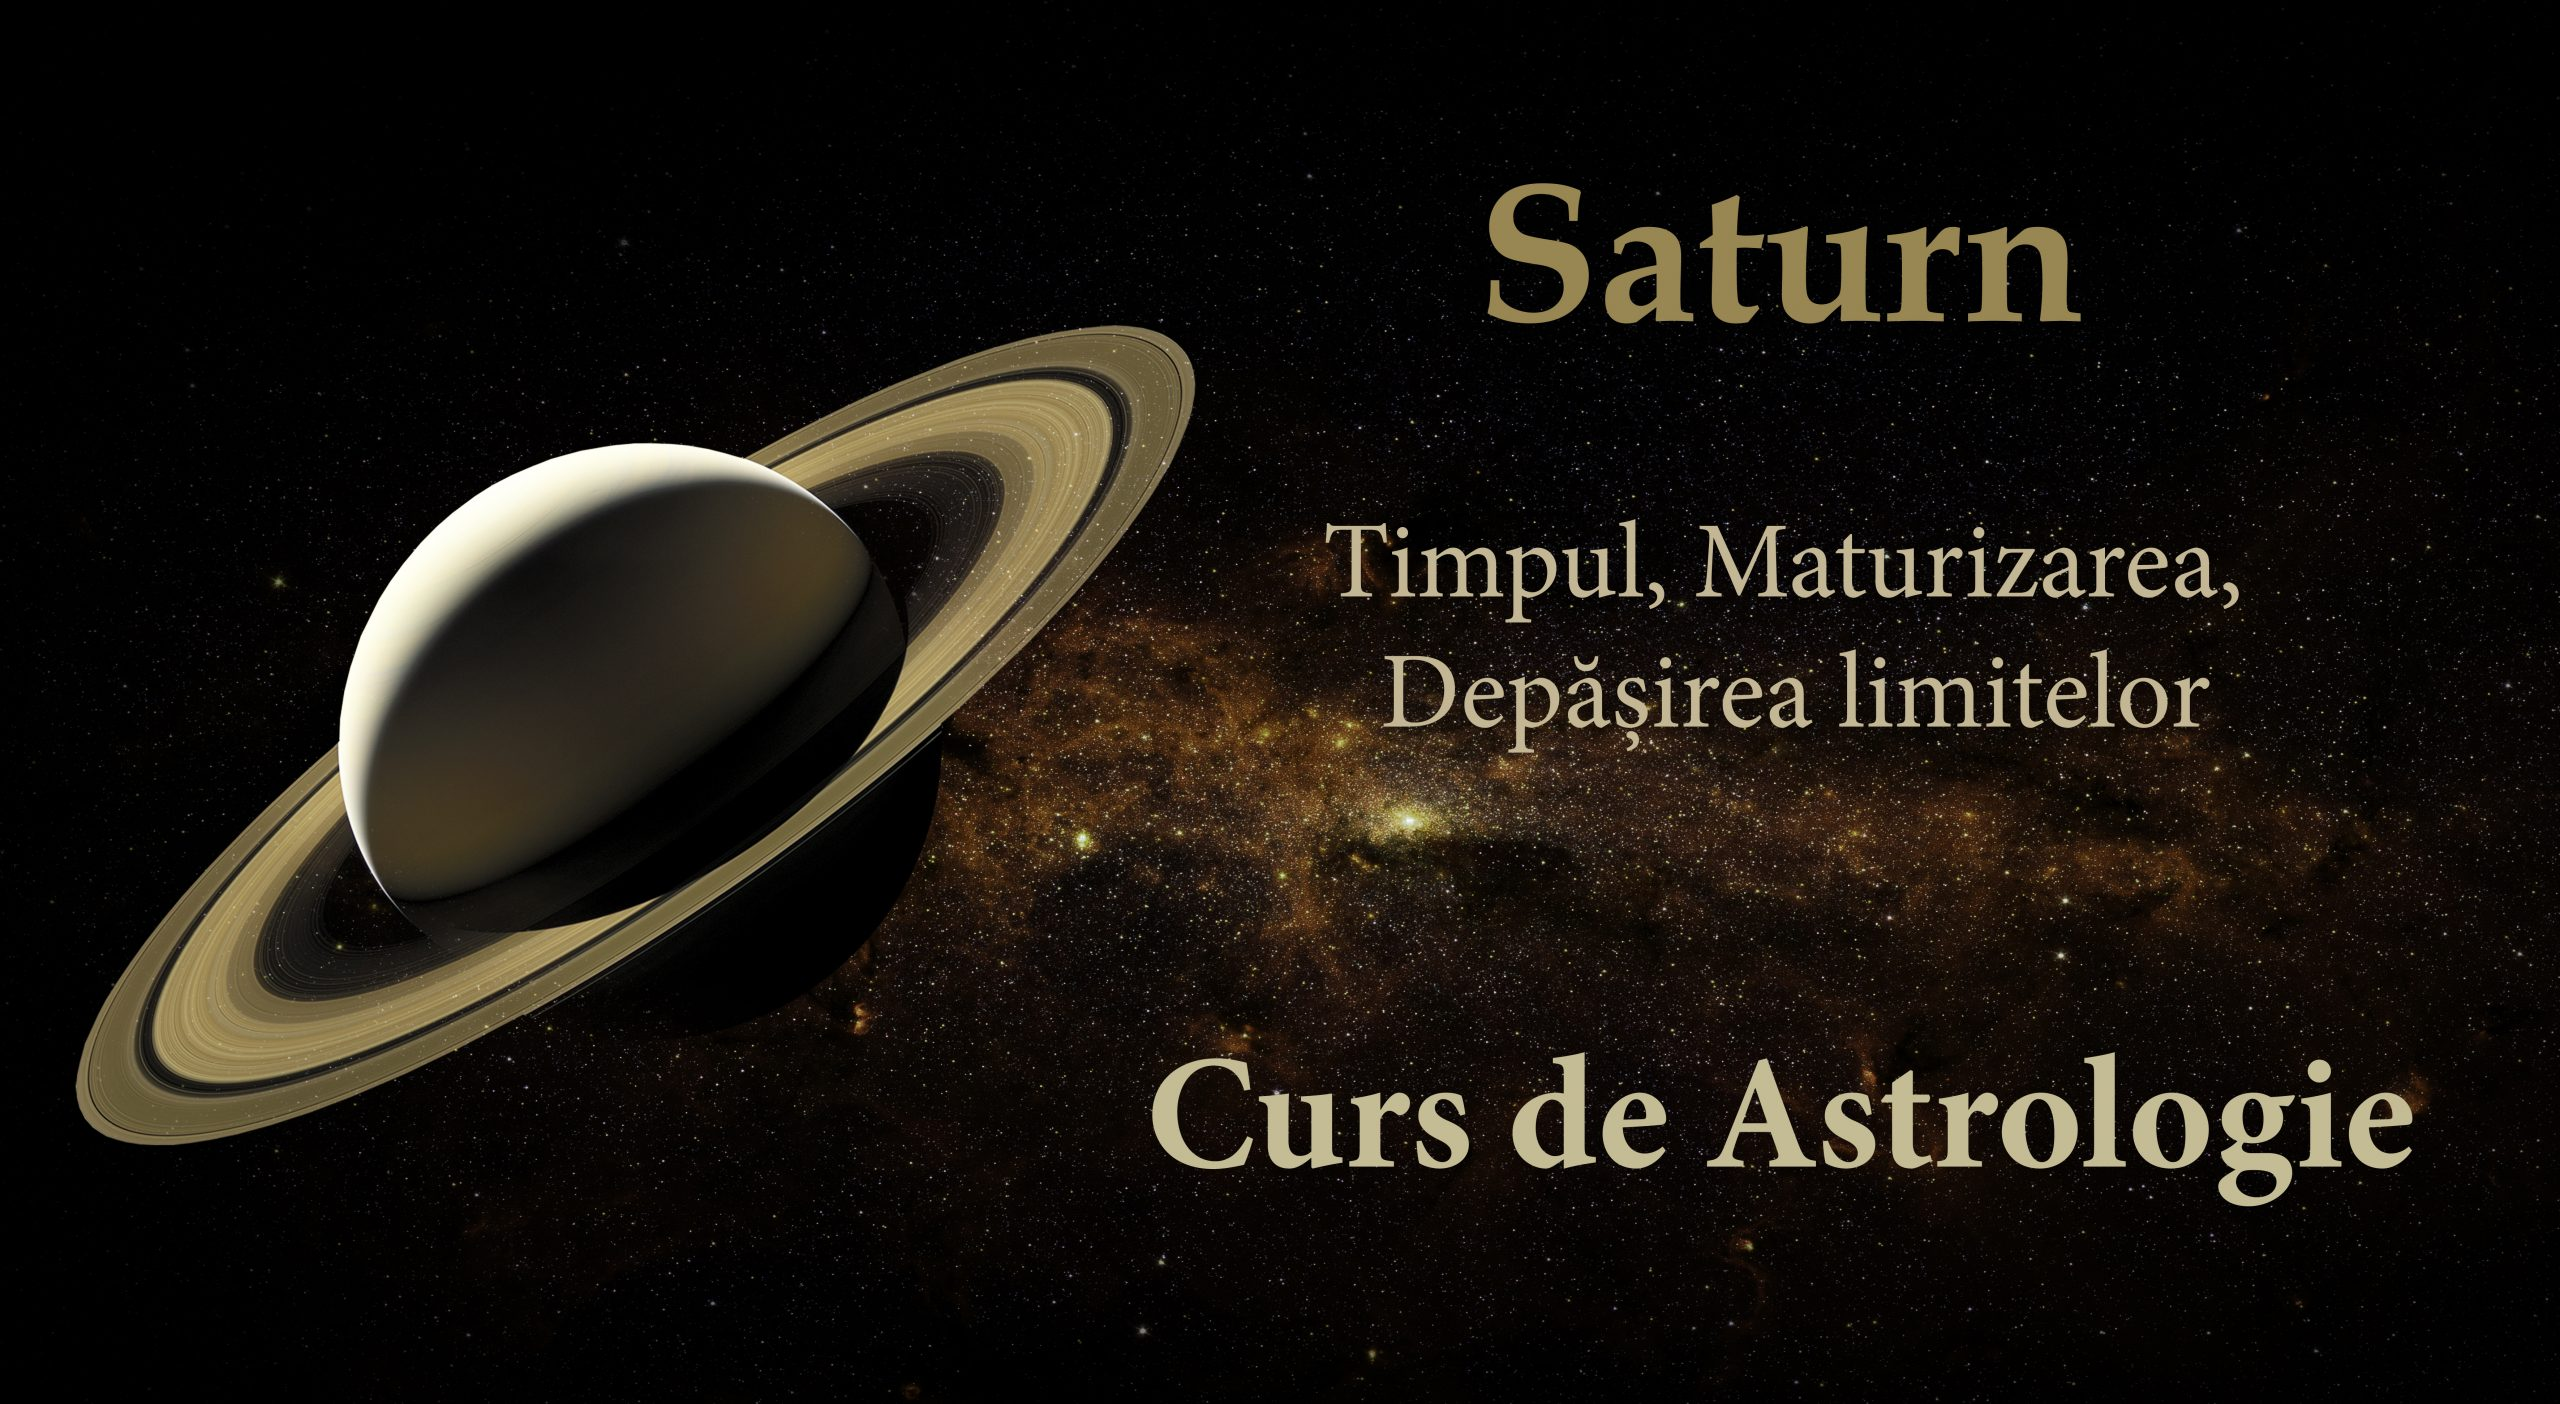 Saturn on space background. Elements of this image furnished by